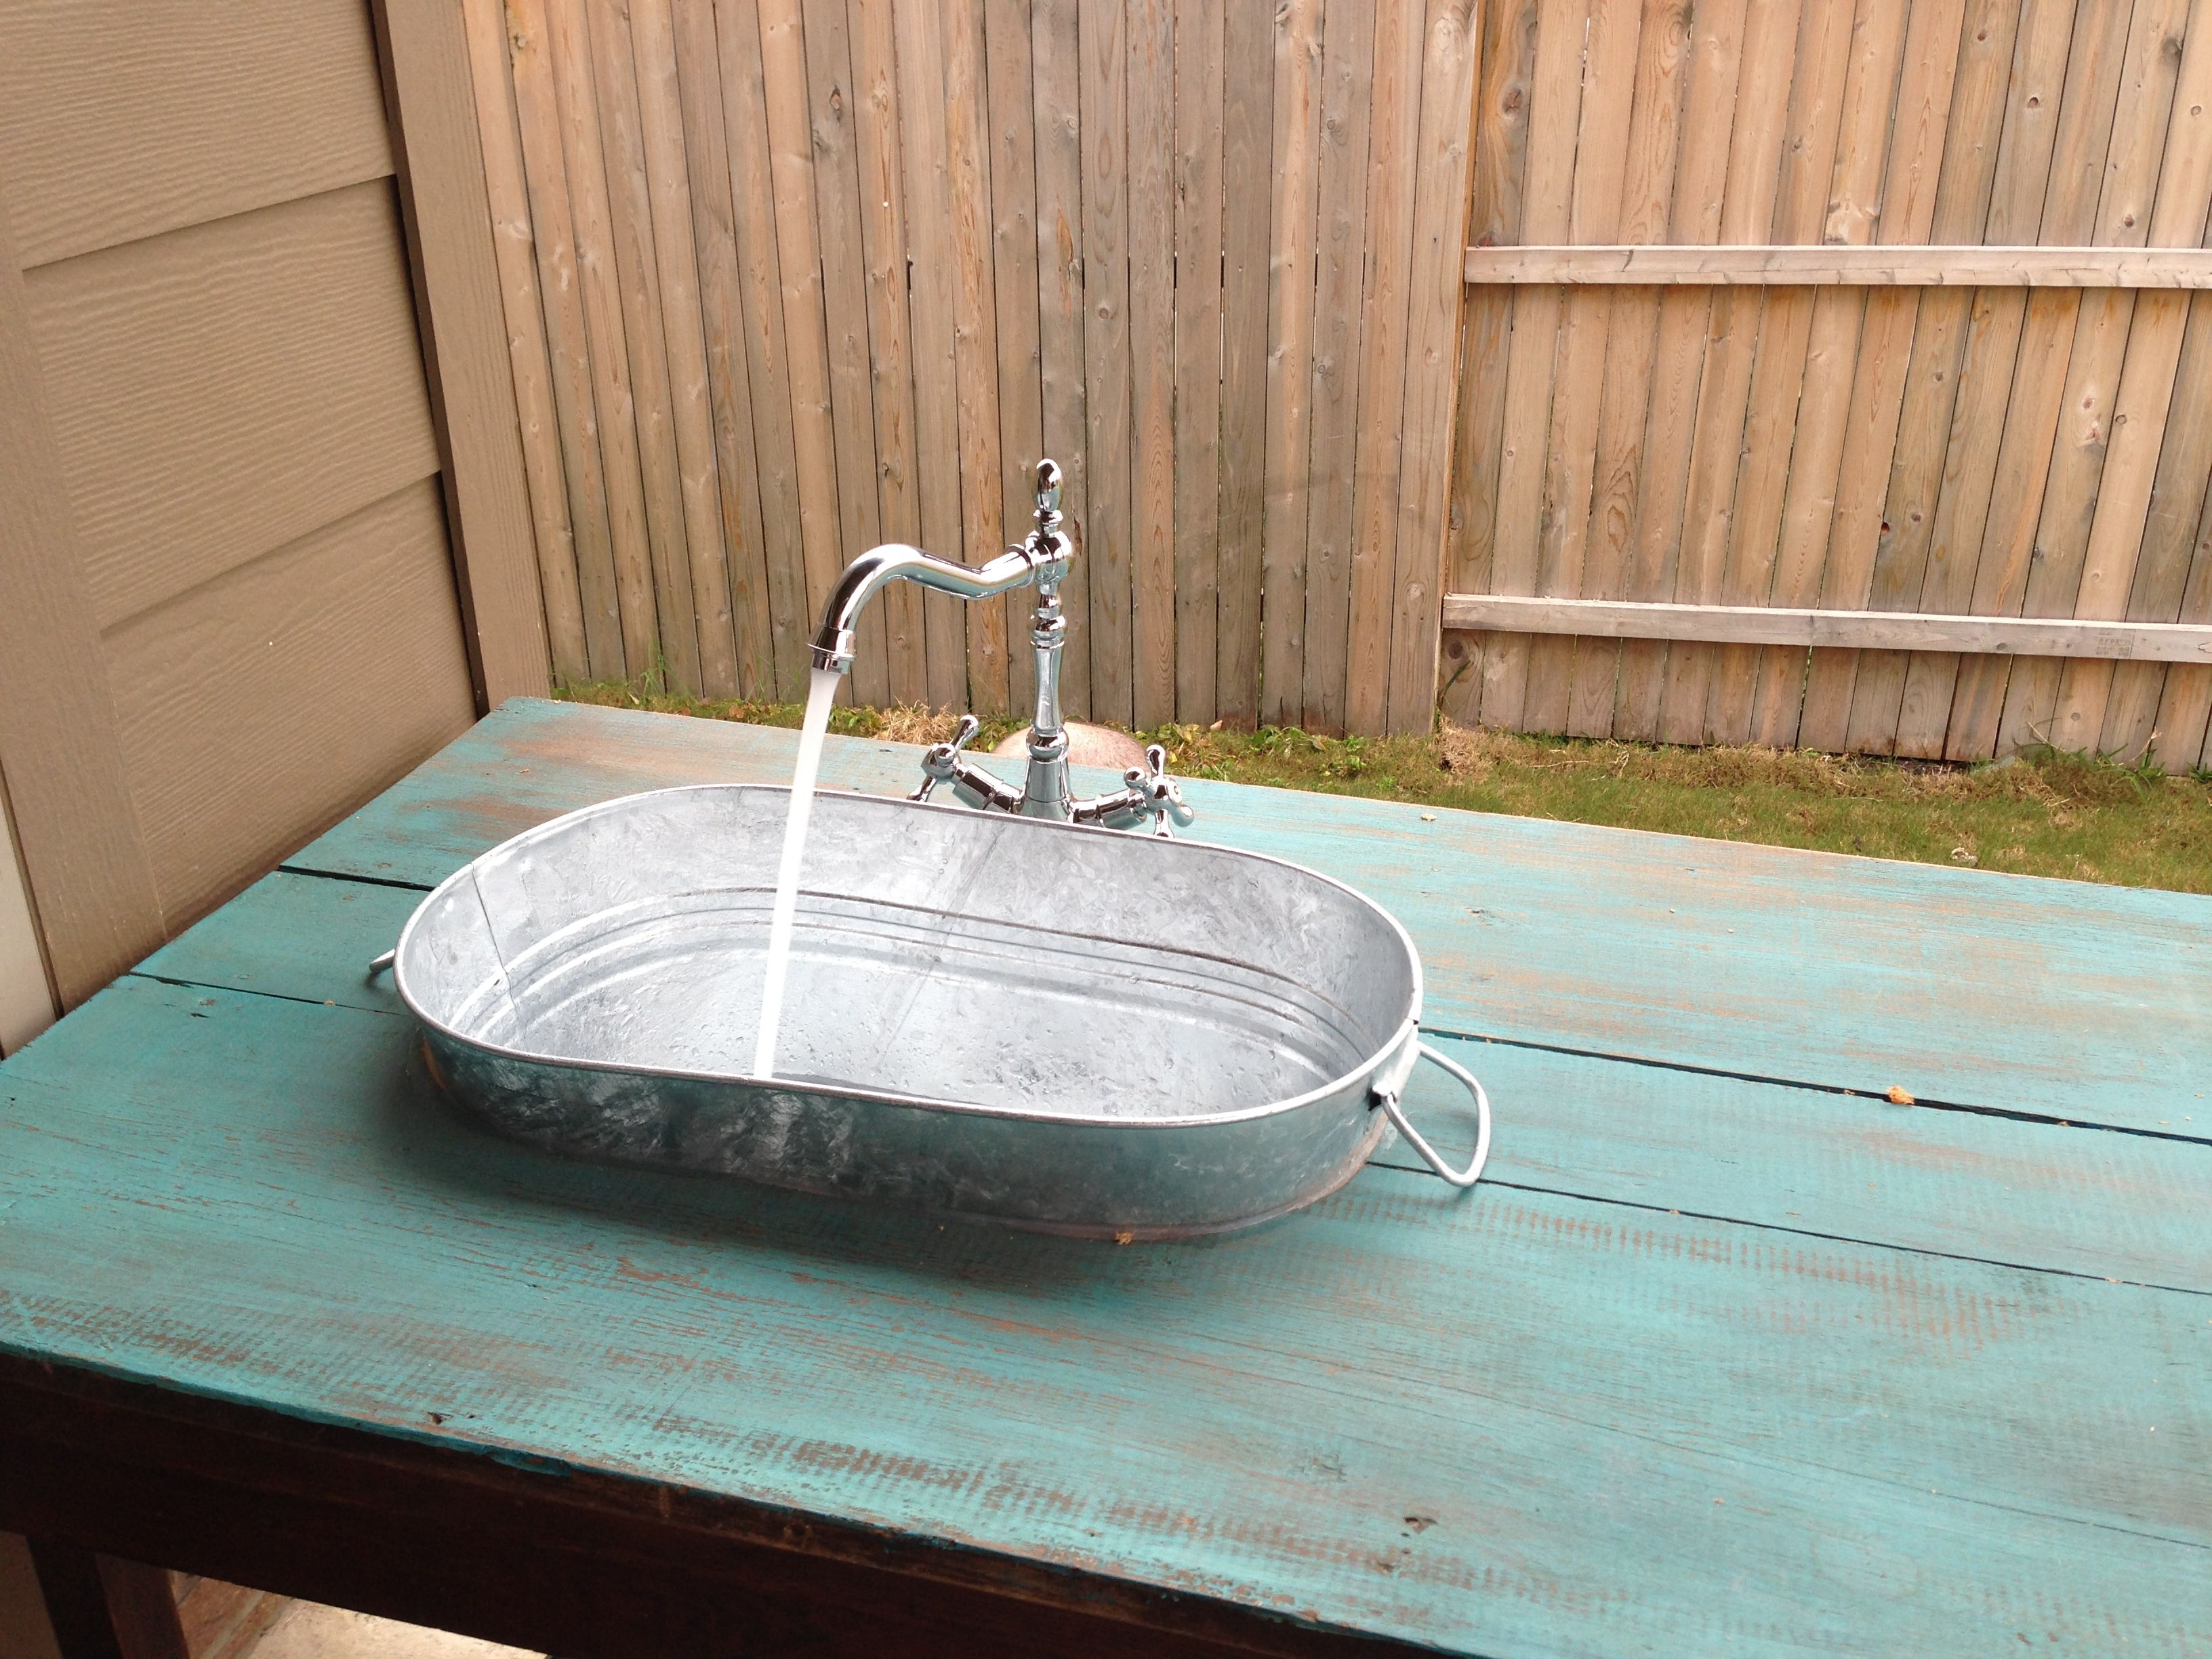 Pin By Tricia Williams On Craftiness Outdoor Sinks Diy Outdoor